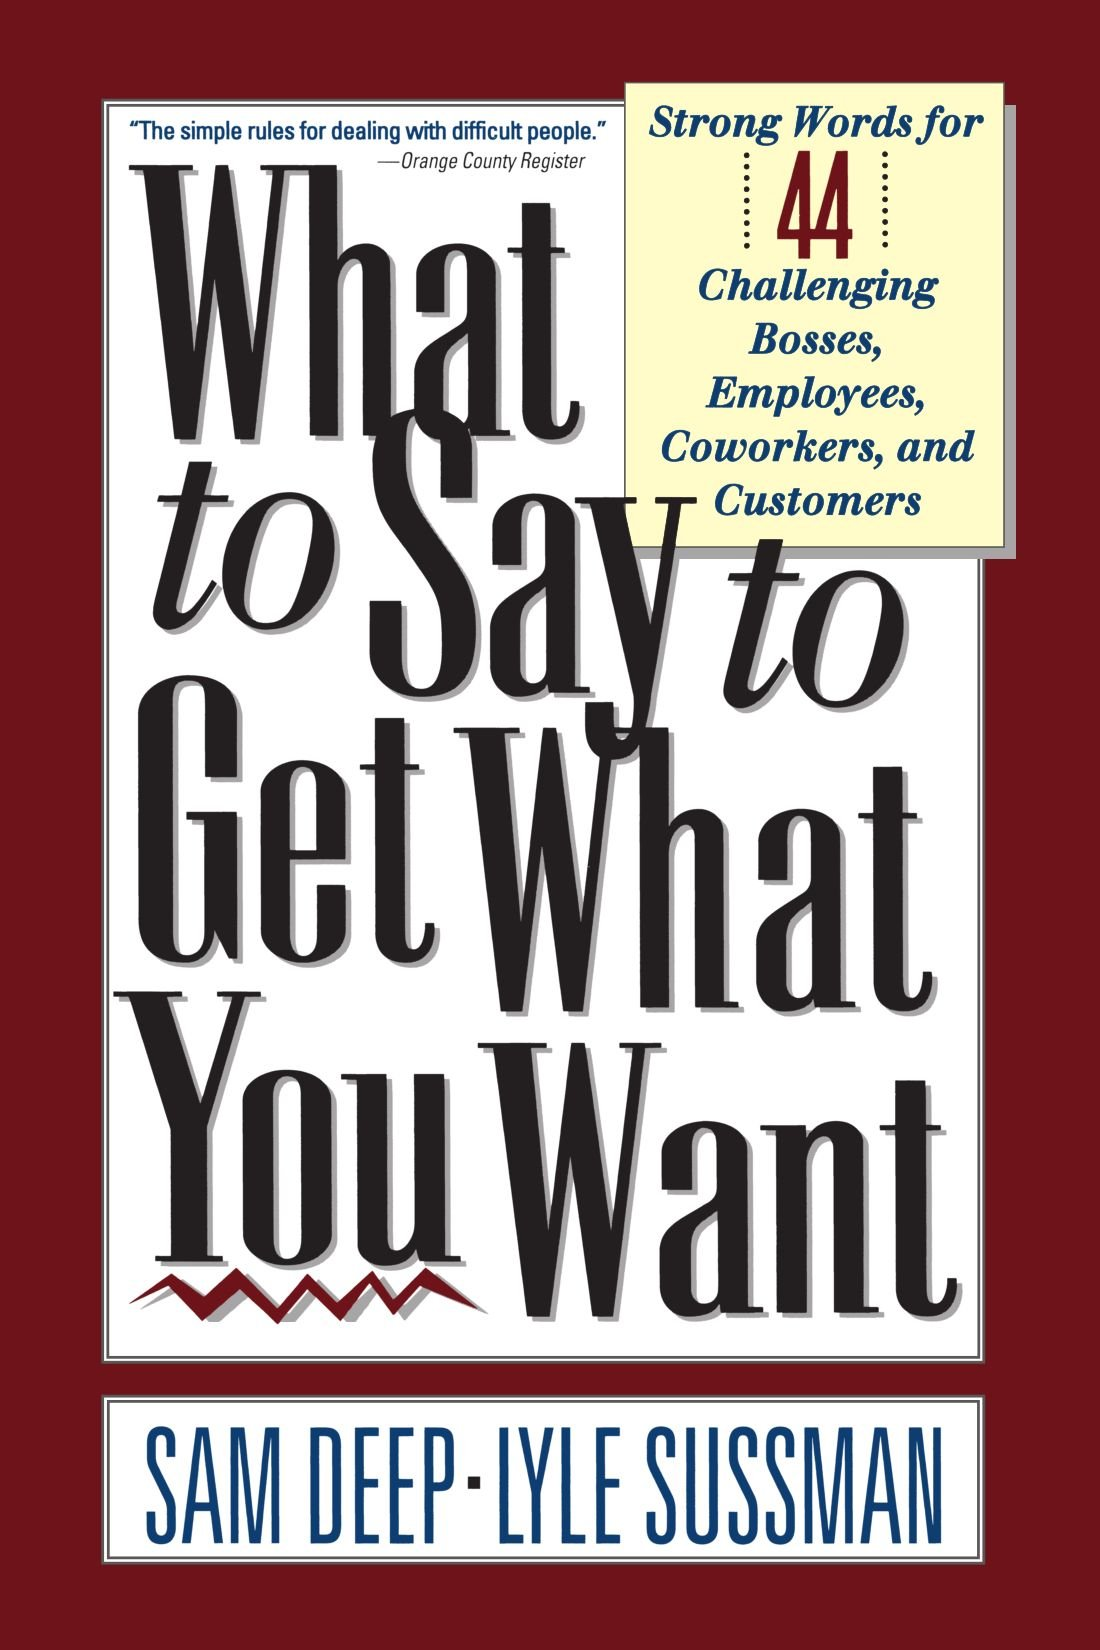 what to say to get what you want strong words for challenging what to say to get what you want strong words for 44 challenging types of bosses employees coworkers and customers sam deep lyle sussman